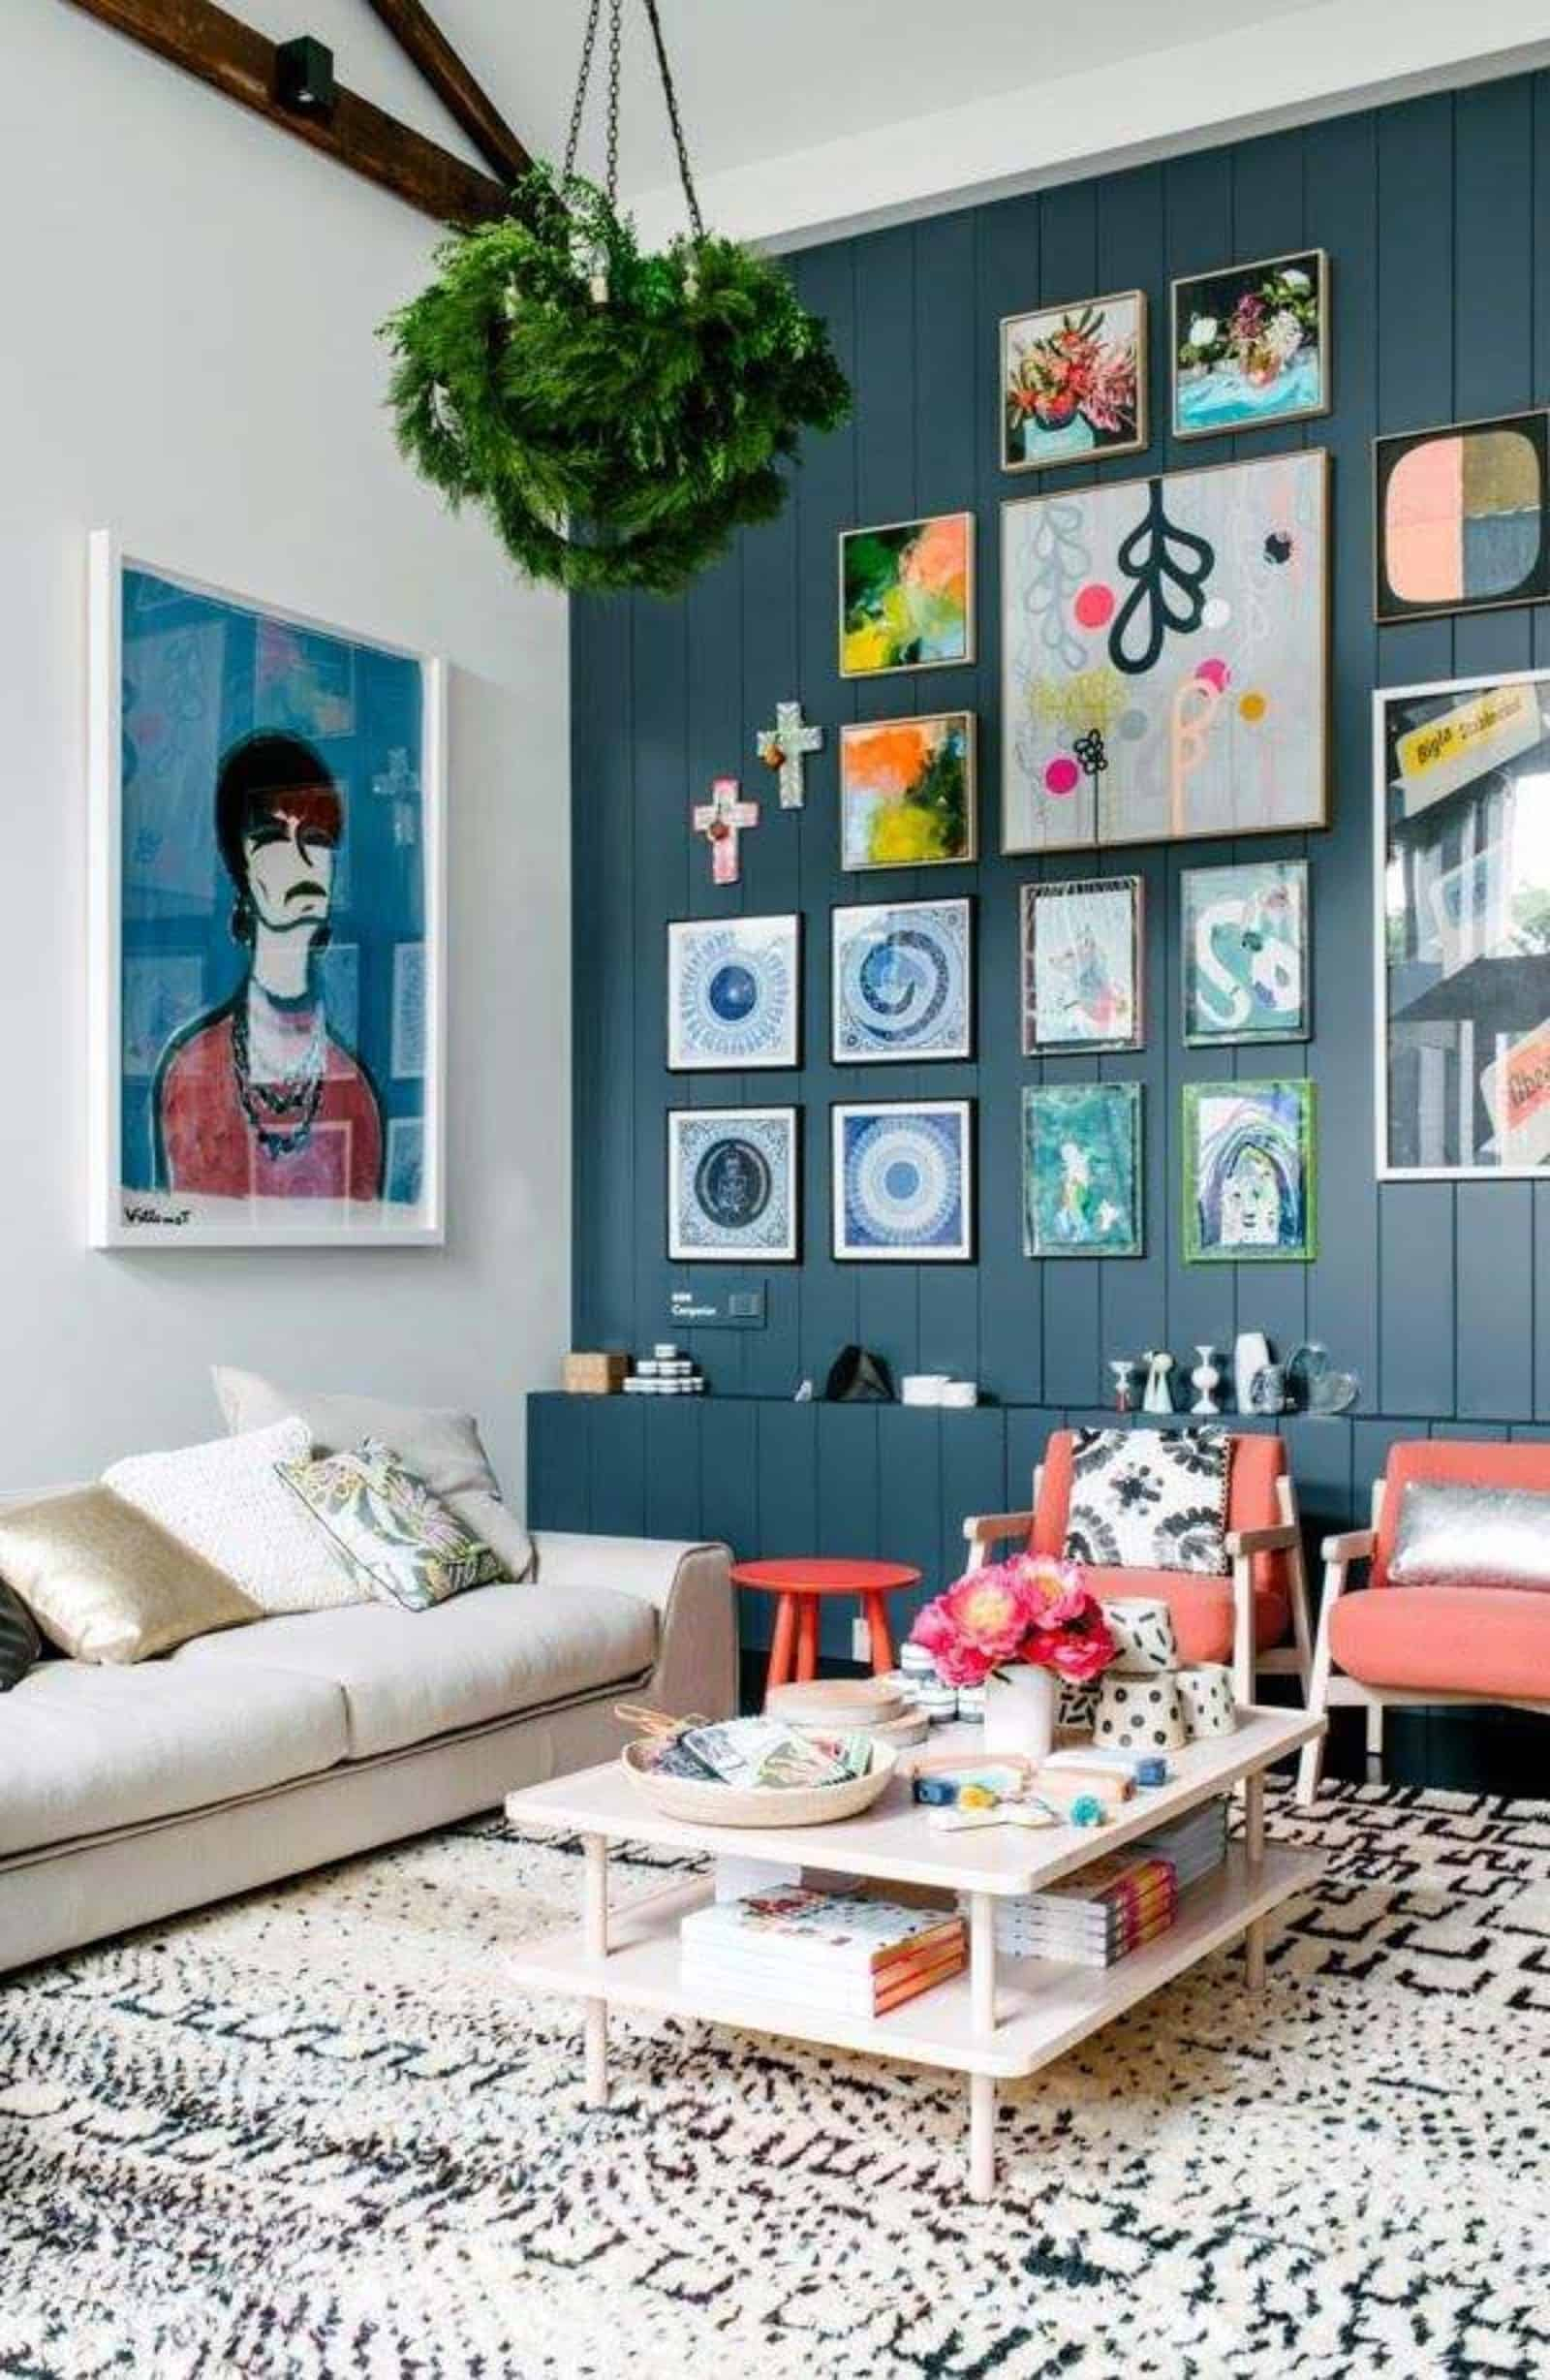 Vintage Gallery Wall With Multi Colored Frames For Small Living Room Design Ideas